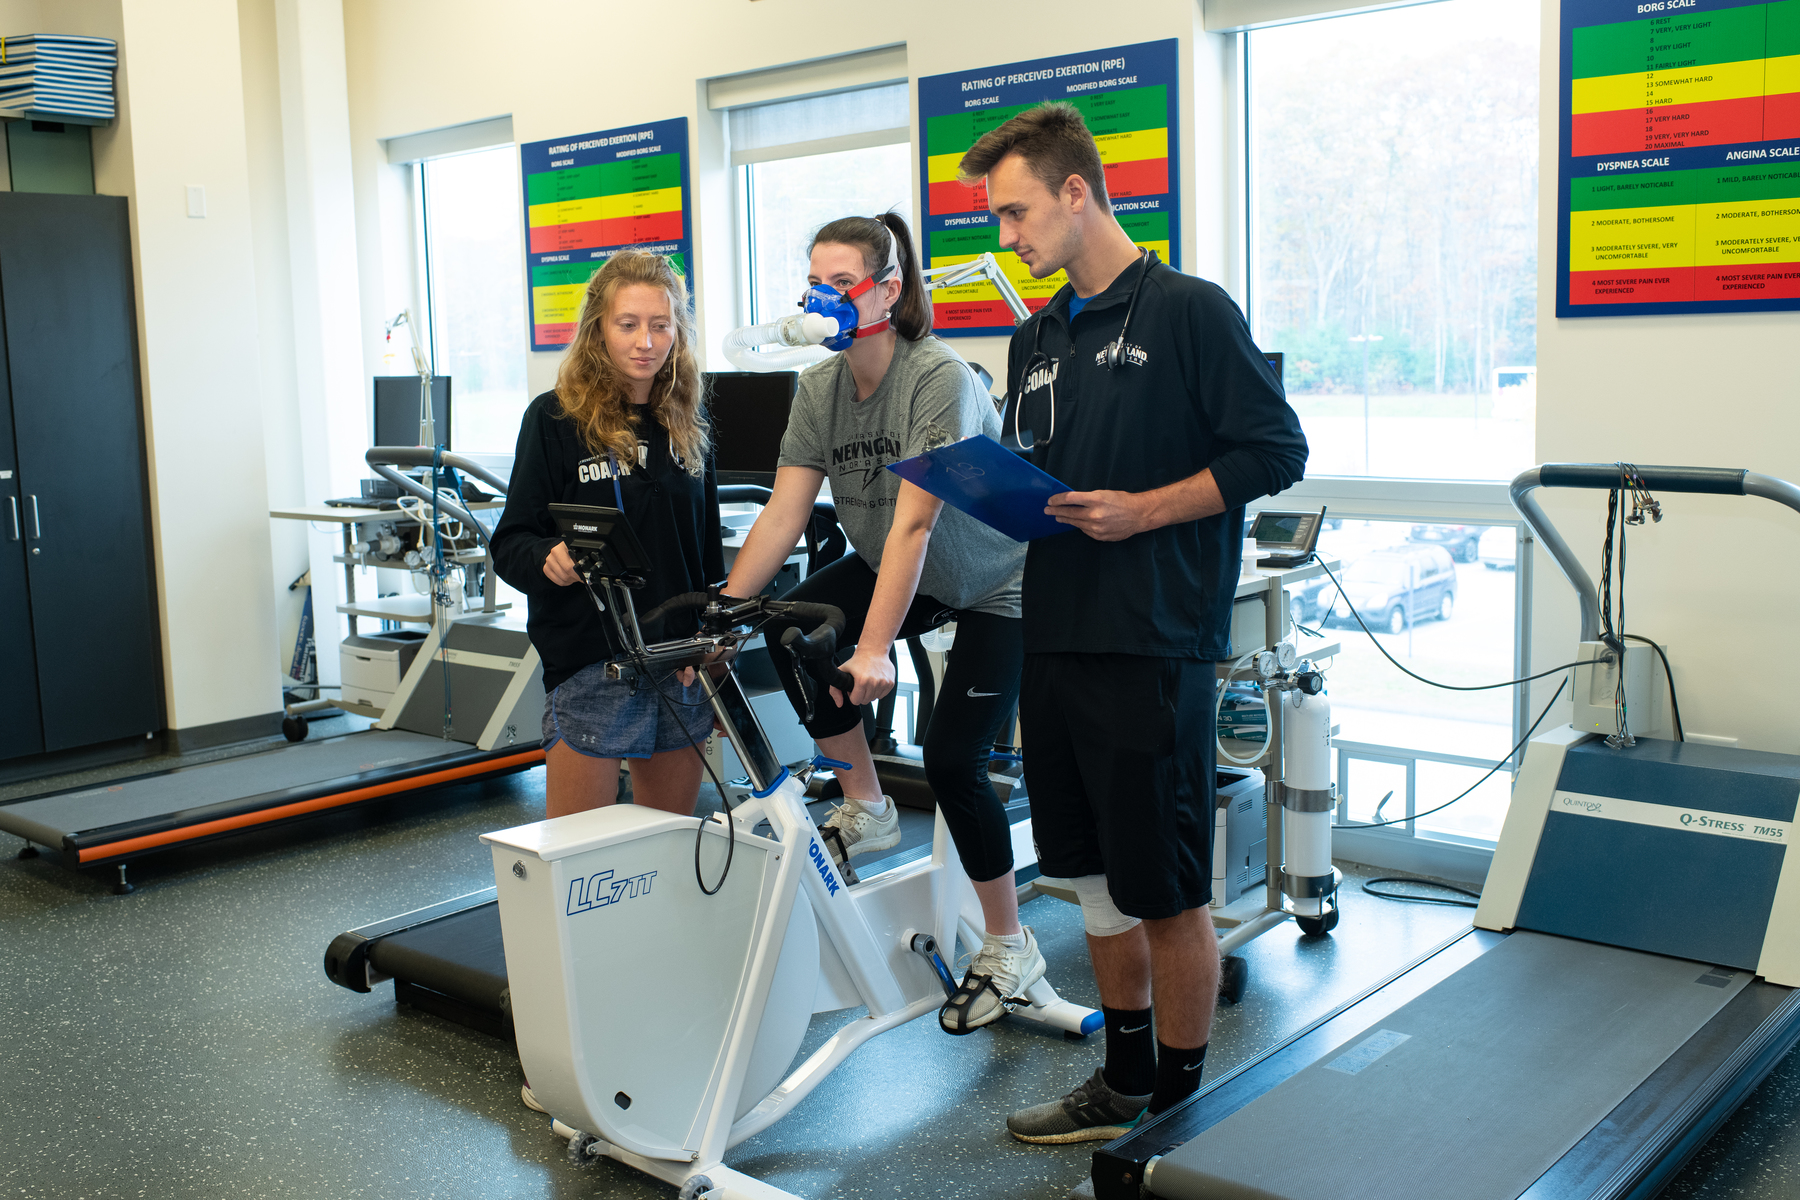 Applied exercise students run an experiment using equipment in The Forum gym